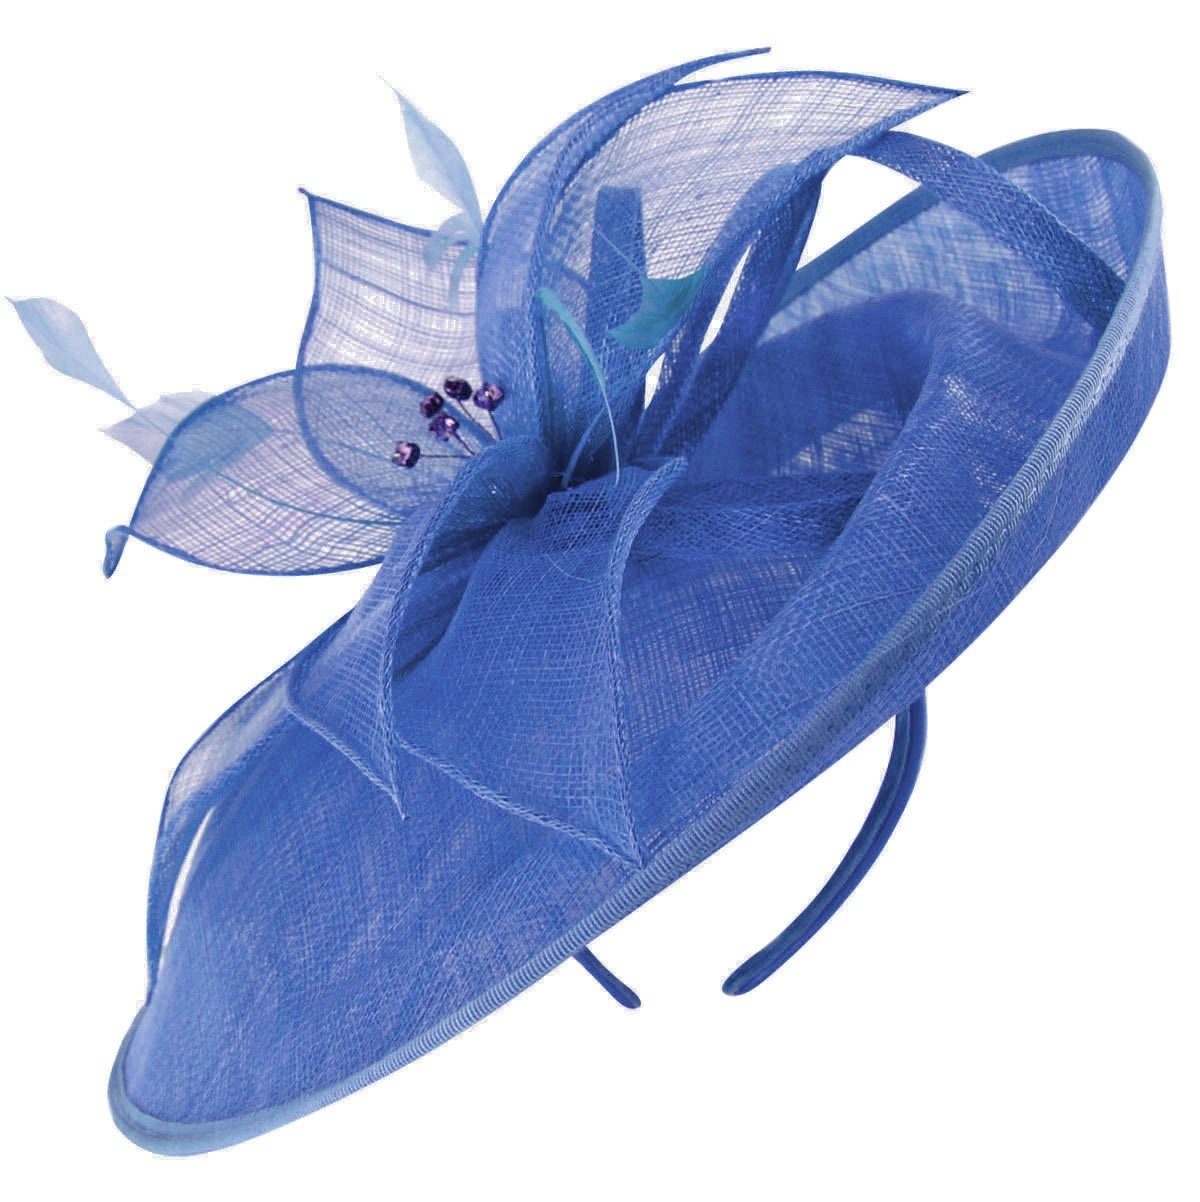 Failsworth Millinery Events Disc Headpiece In Regatta, Size: One Size by Failsworth Millinery